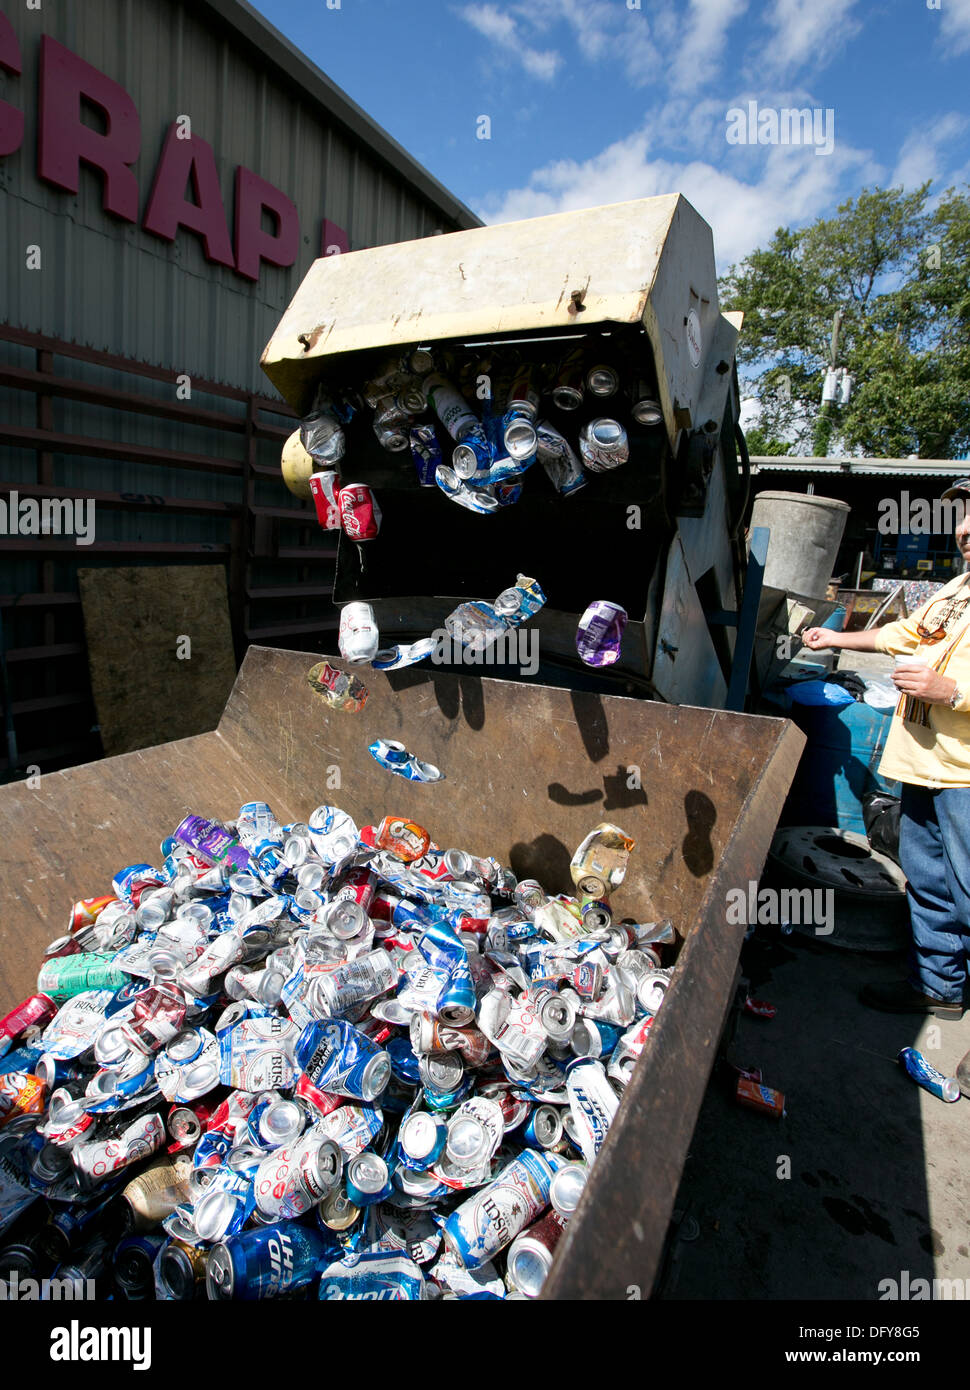 Male employee uses machine to crush aluminum cans at a metal recycling company in Texas - Stock Image